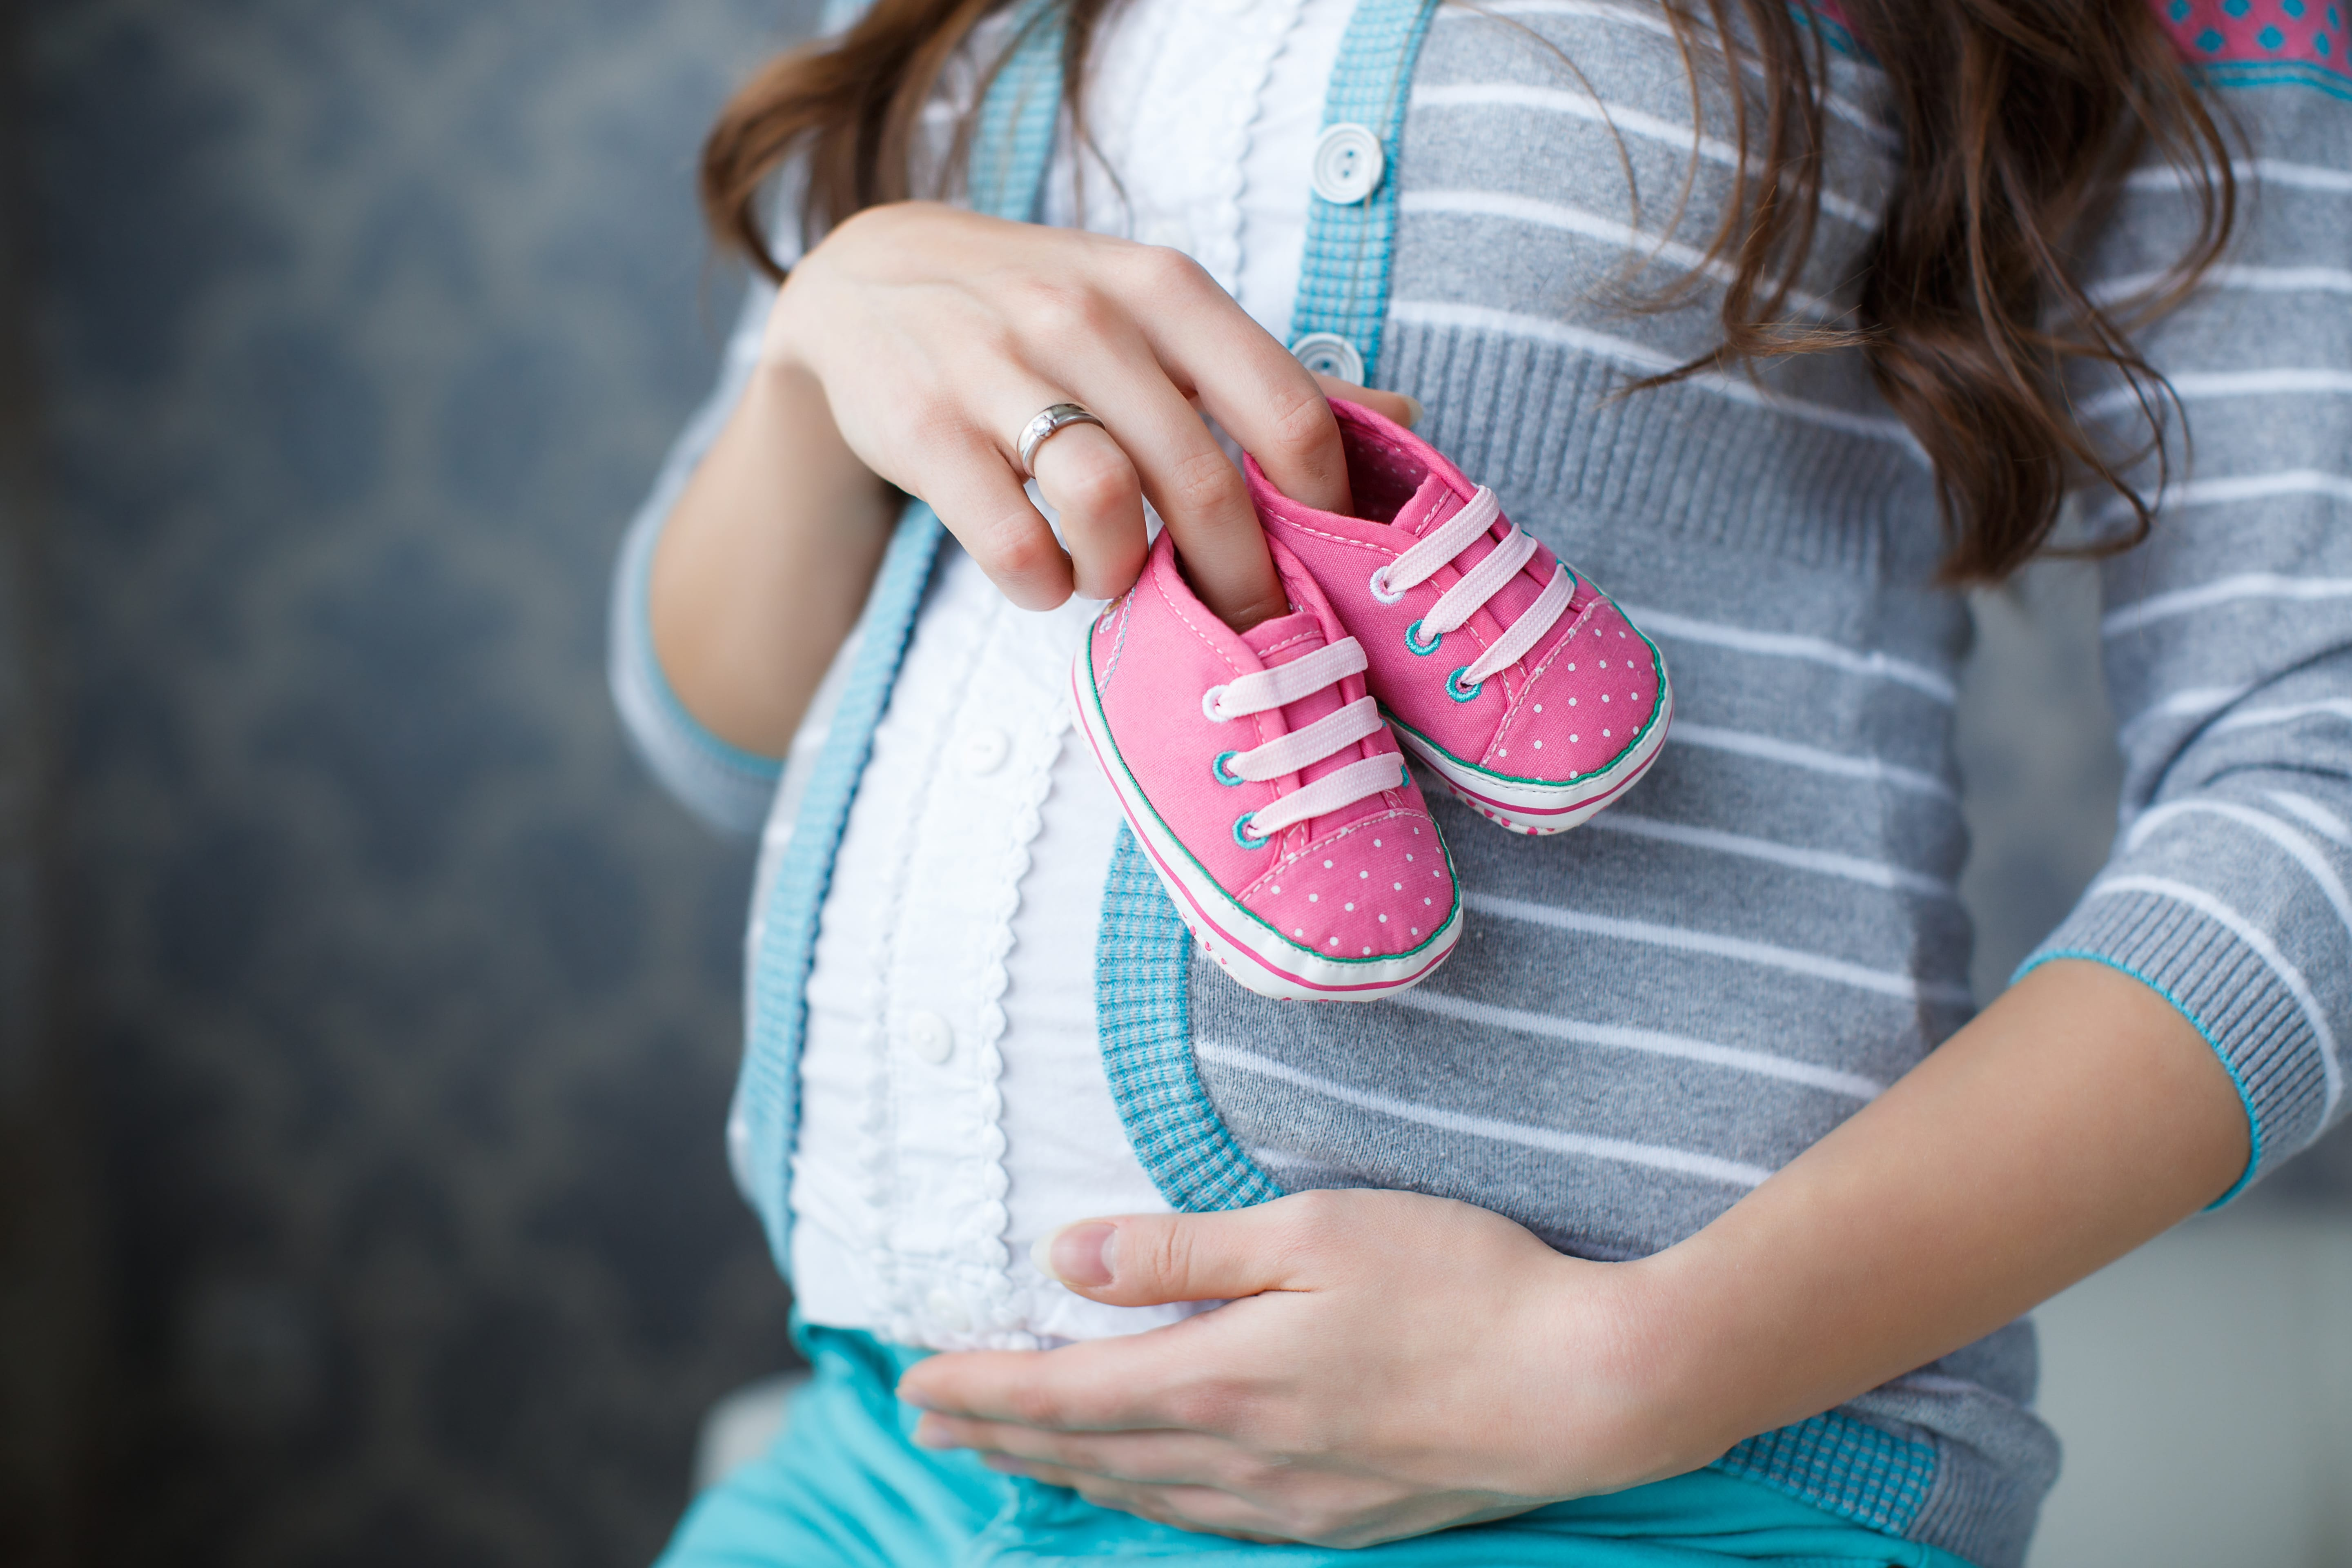 Normal Delivery Tips in Hindi, Pregnancy Tips for Normal Delivery in Hindi, Normal Delivery in Hindi